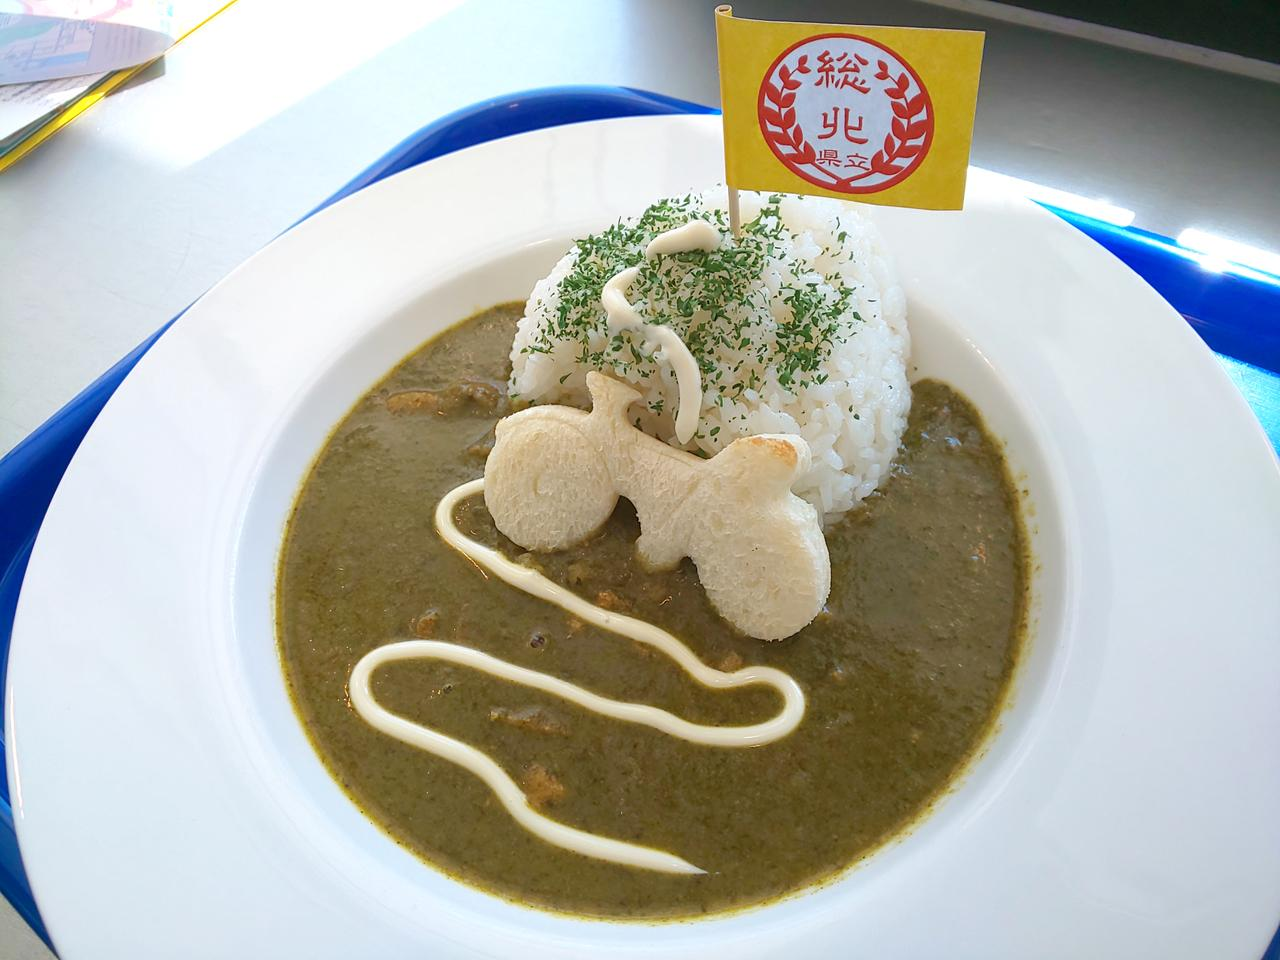 Images : 総北激坂カレー(石ノ森萬画館)※2019年10月14日まで